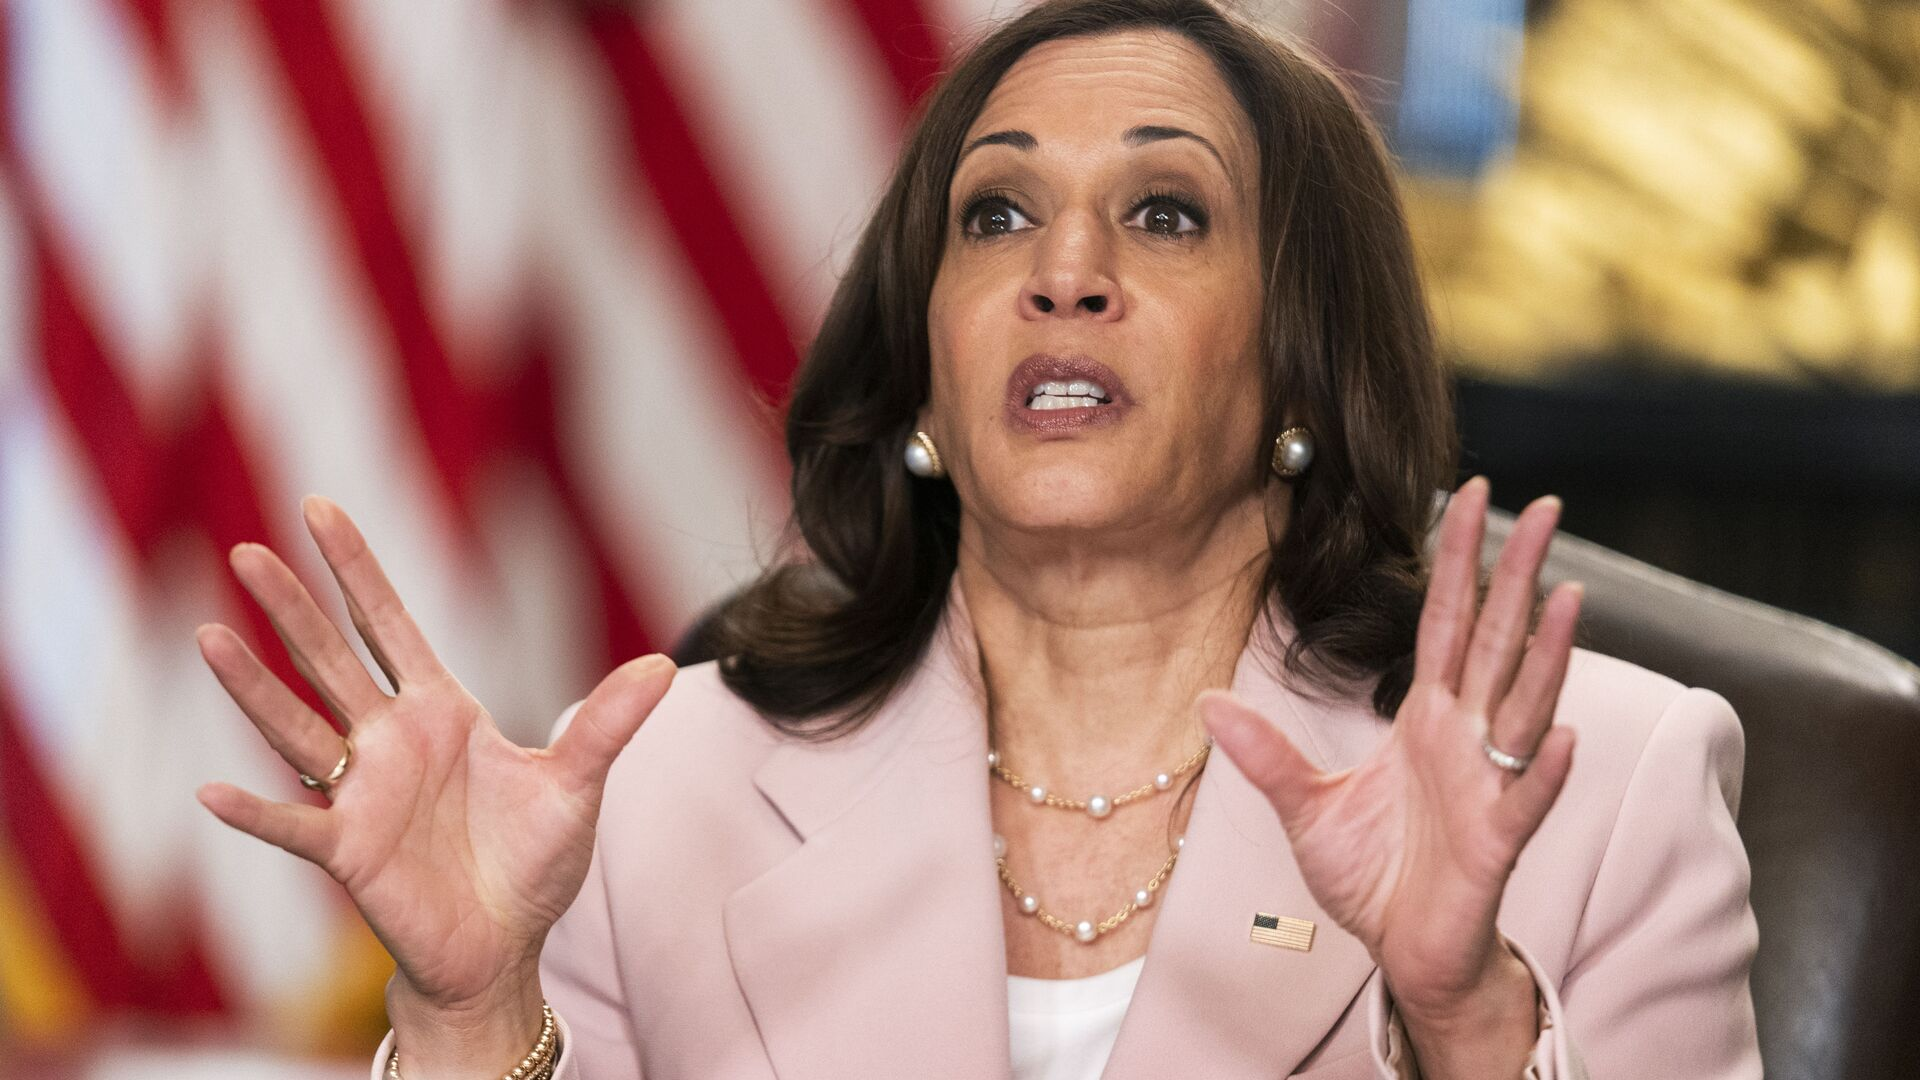 Vice President Kamala Harris speaks during a roundtable with disabilities advocates on voting rights in the Vice President's Ceremonial Office at the Eisenhower Executive Office Building on the White House complex, Wednesday, July 14, 2021, in Washington - Sputnik International, 1920, 12.10.2021